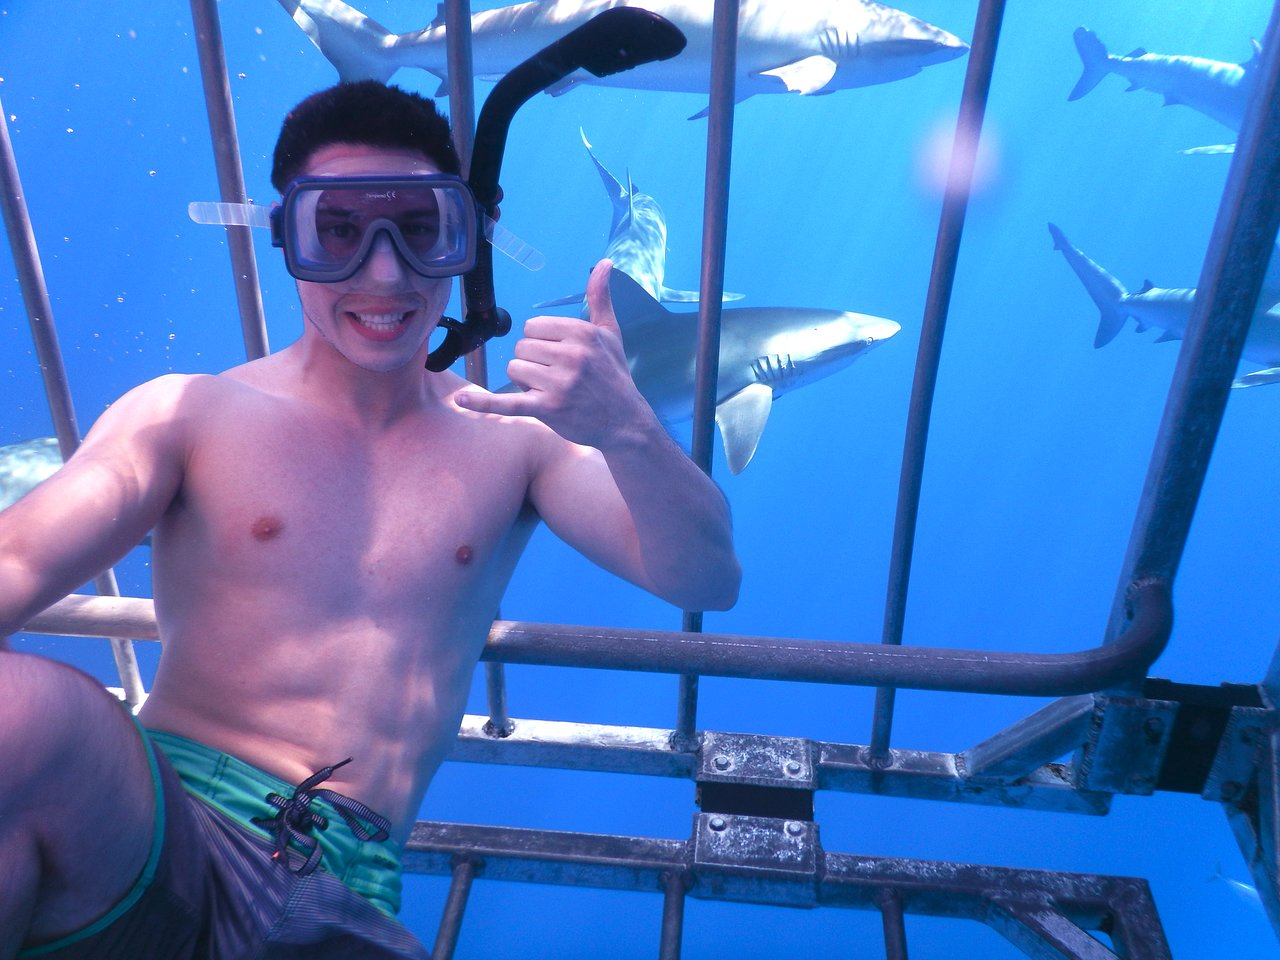 One of the best experiences of my life. It was a very quick ride out to the cage and once we got there, the sharks came fairly quickly. You feel very safe inside the cage and the plexiglas lets you see so much. I'd definitely do it again the next time I'm in Hawaii.